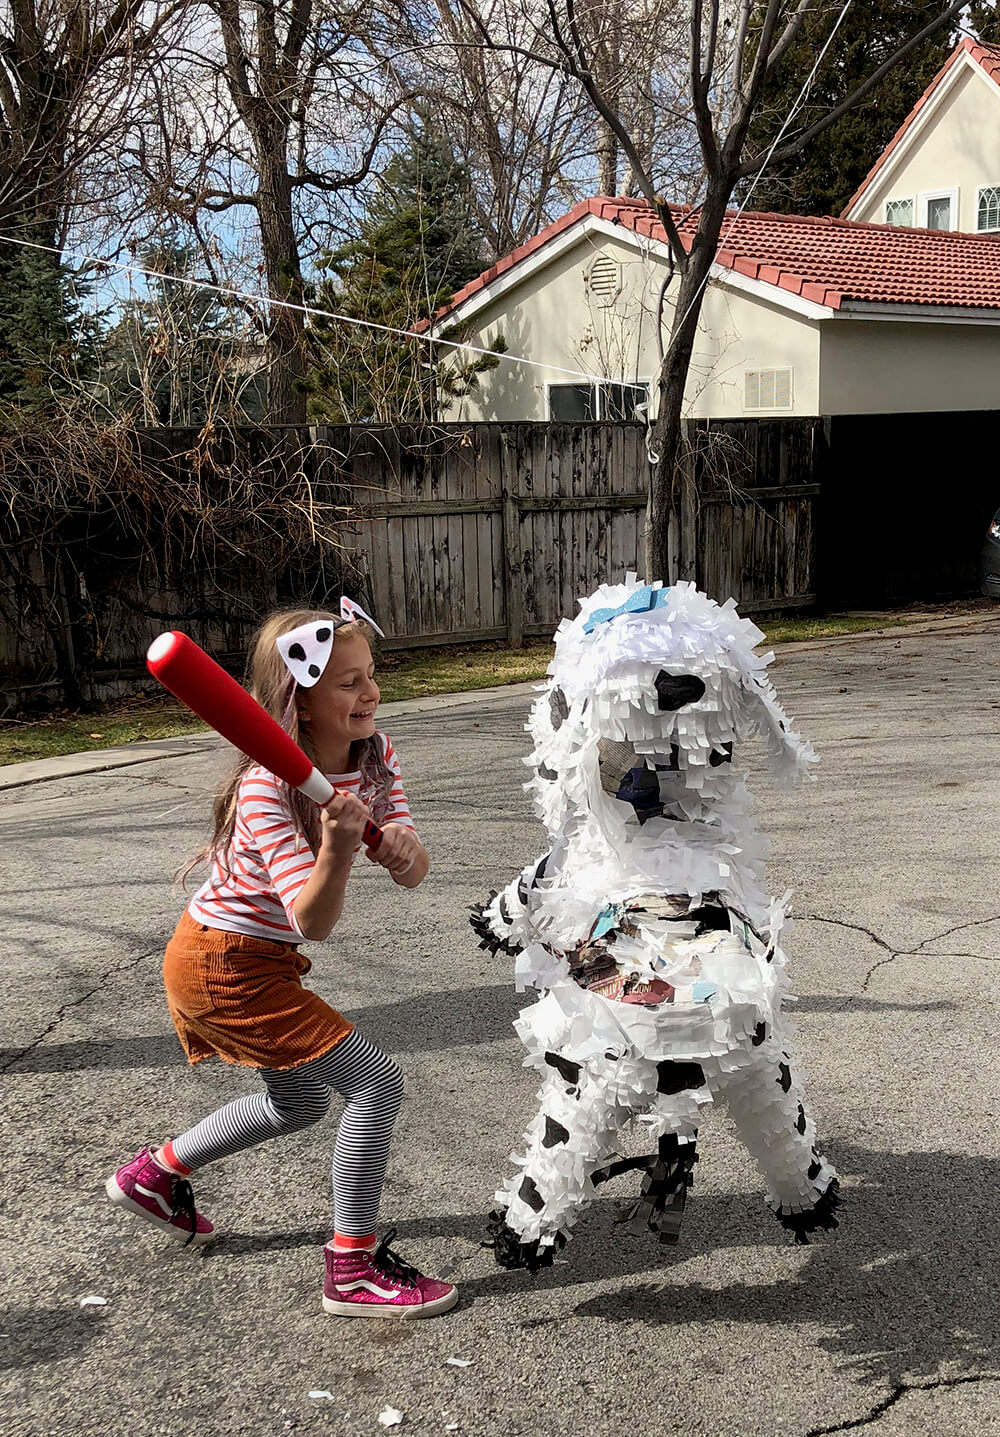 Dog piñata - Puppy party activity ideas for kids